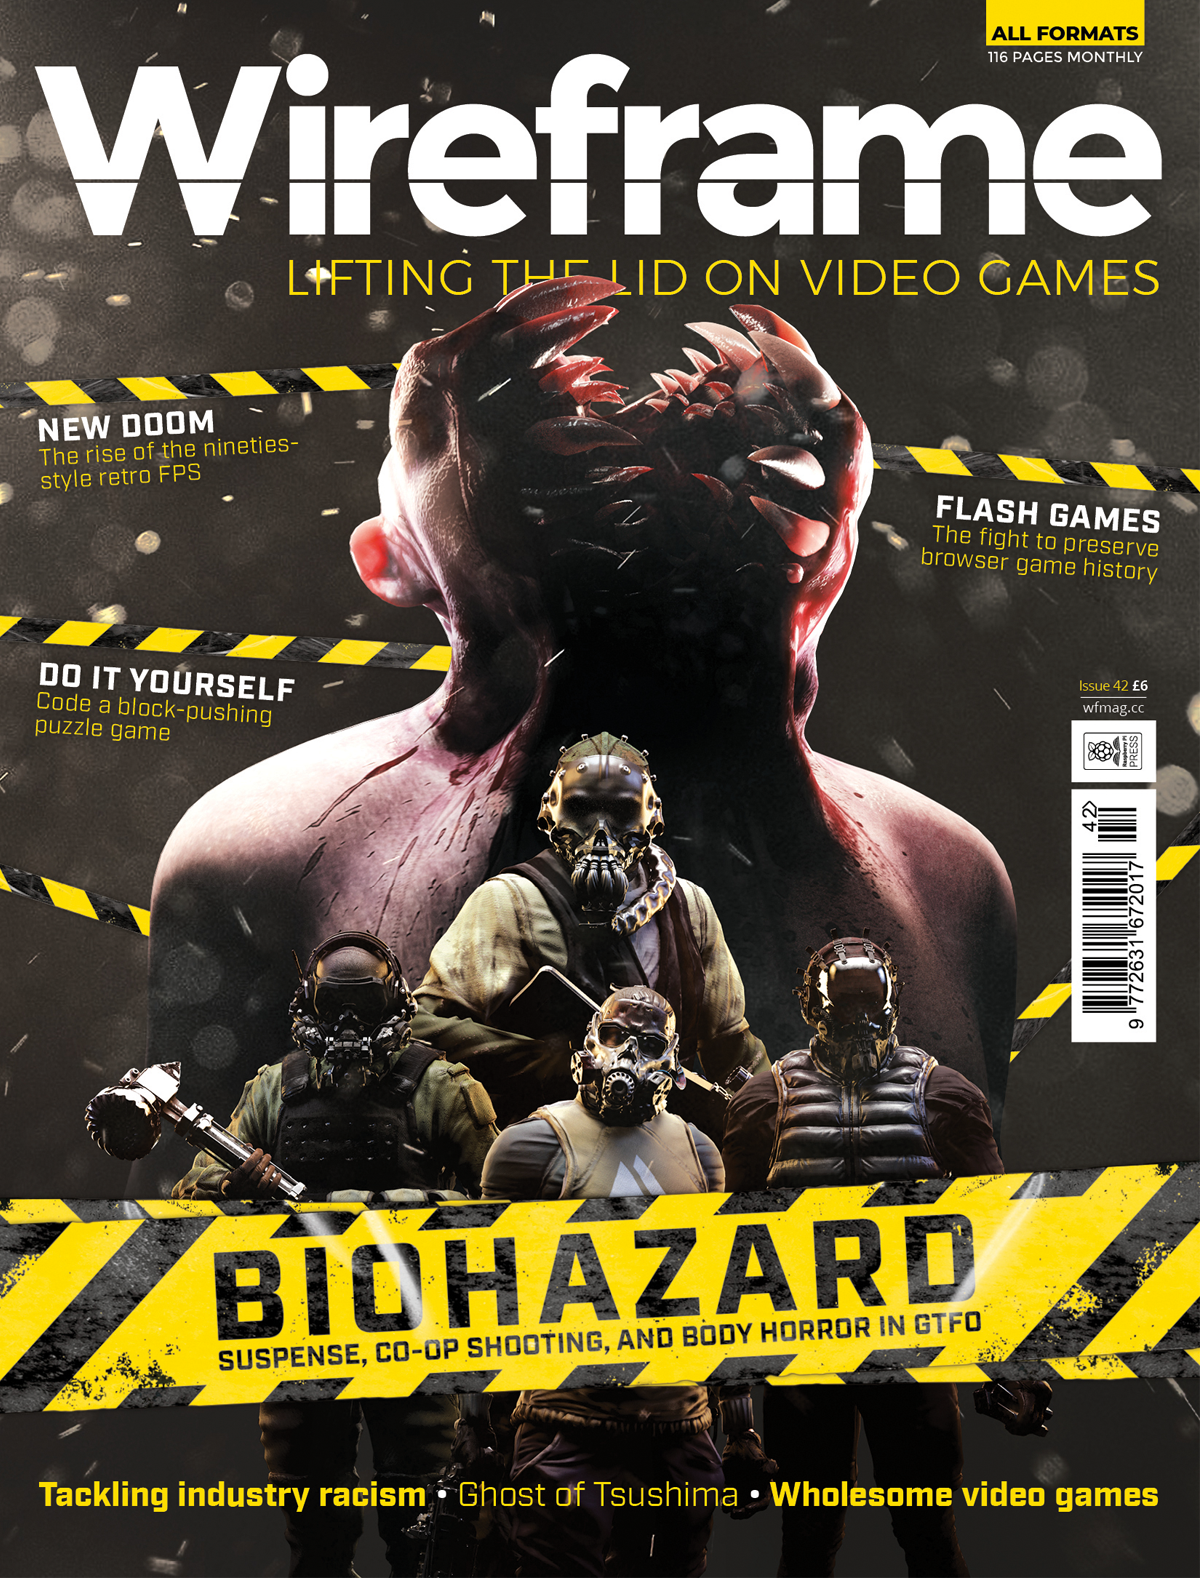 Wireframe issue 42 cover